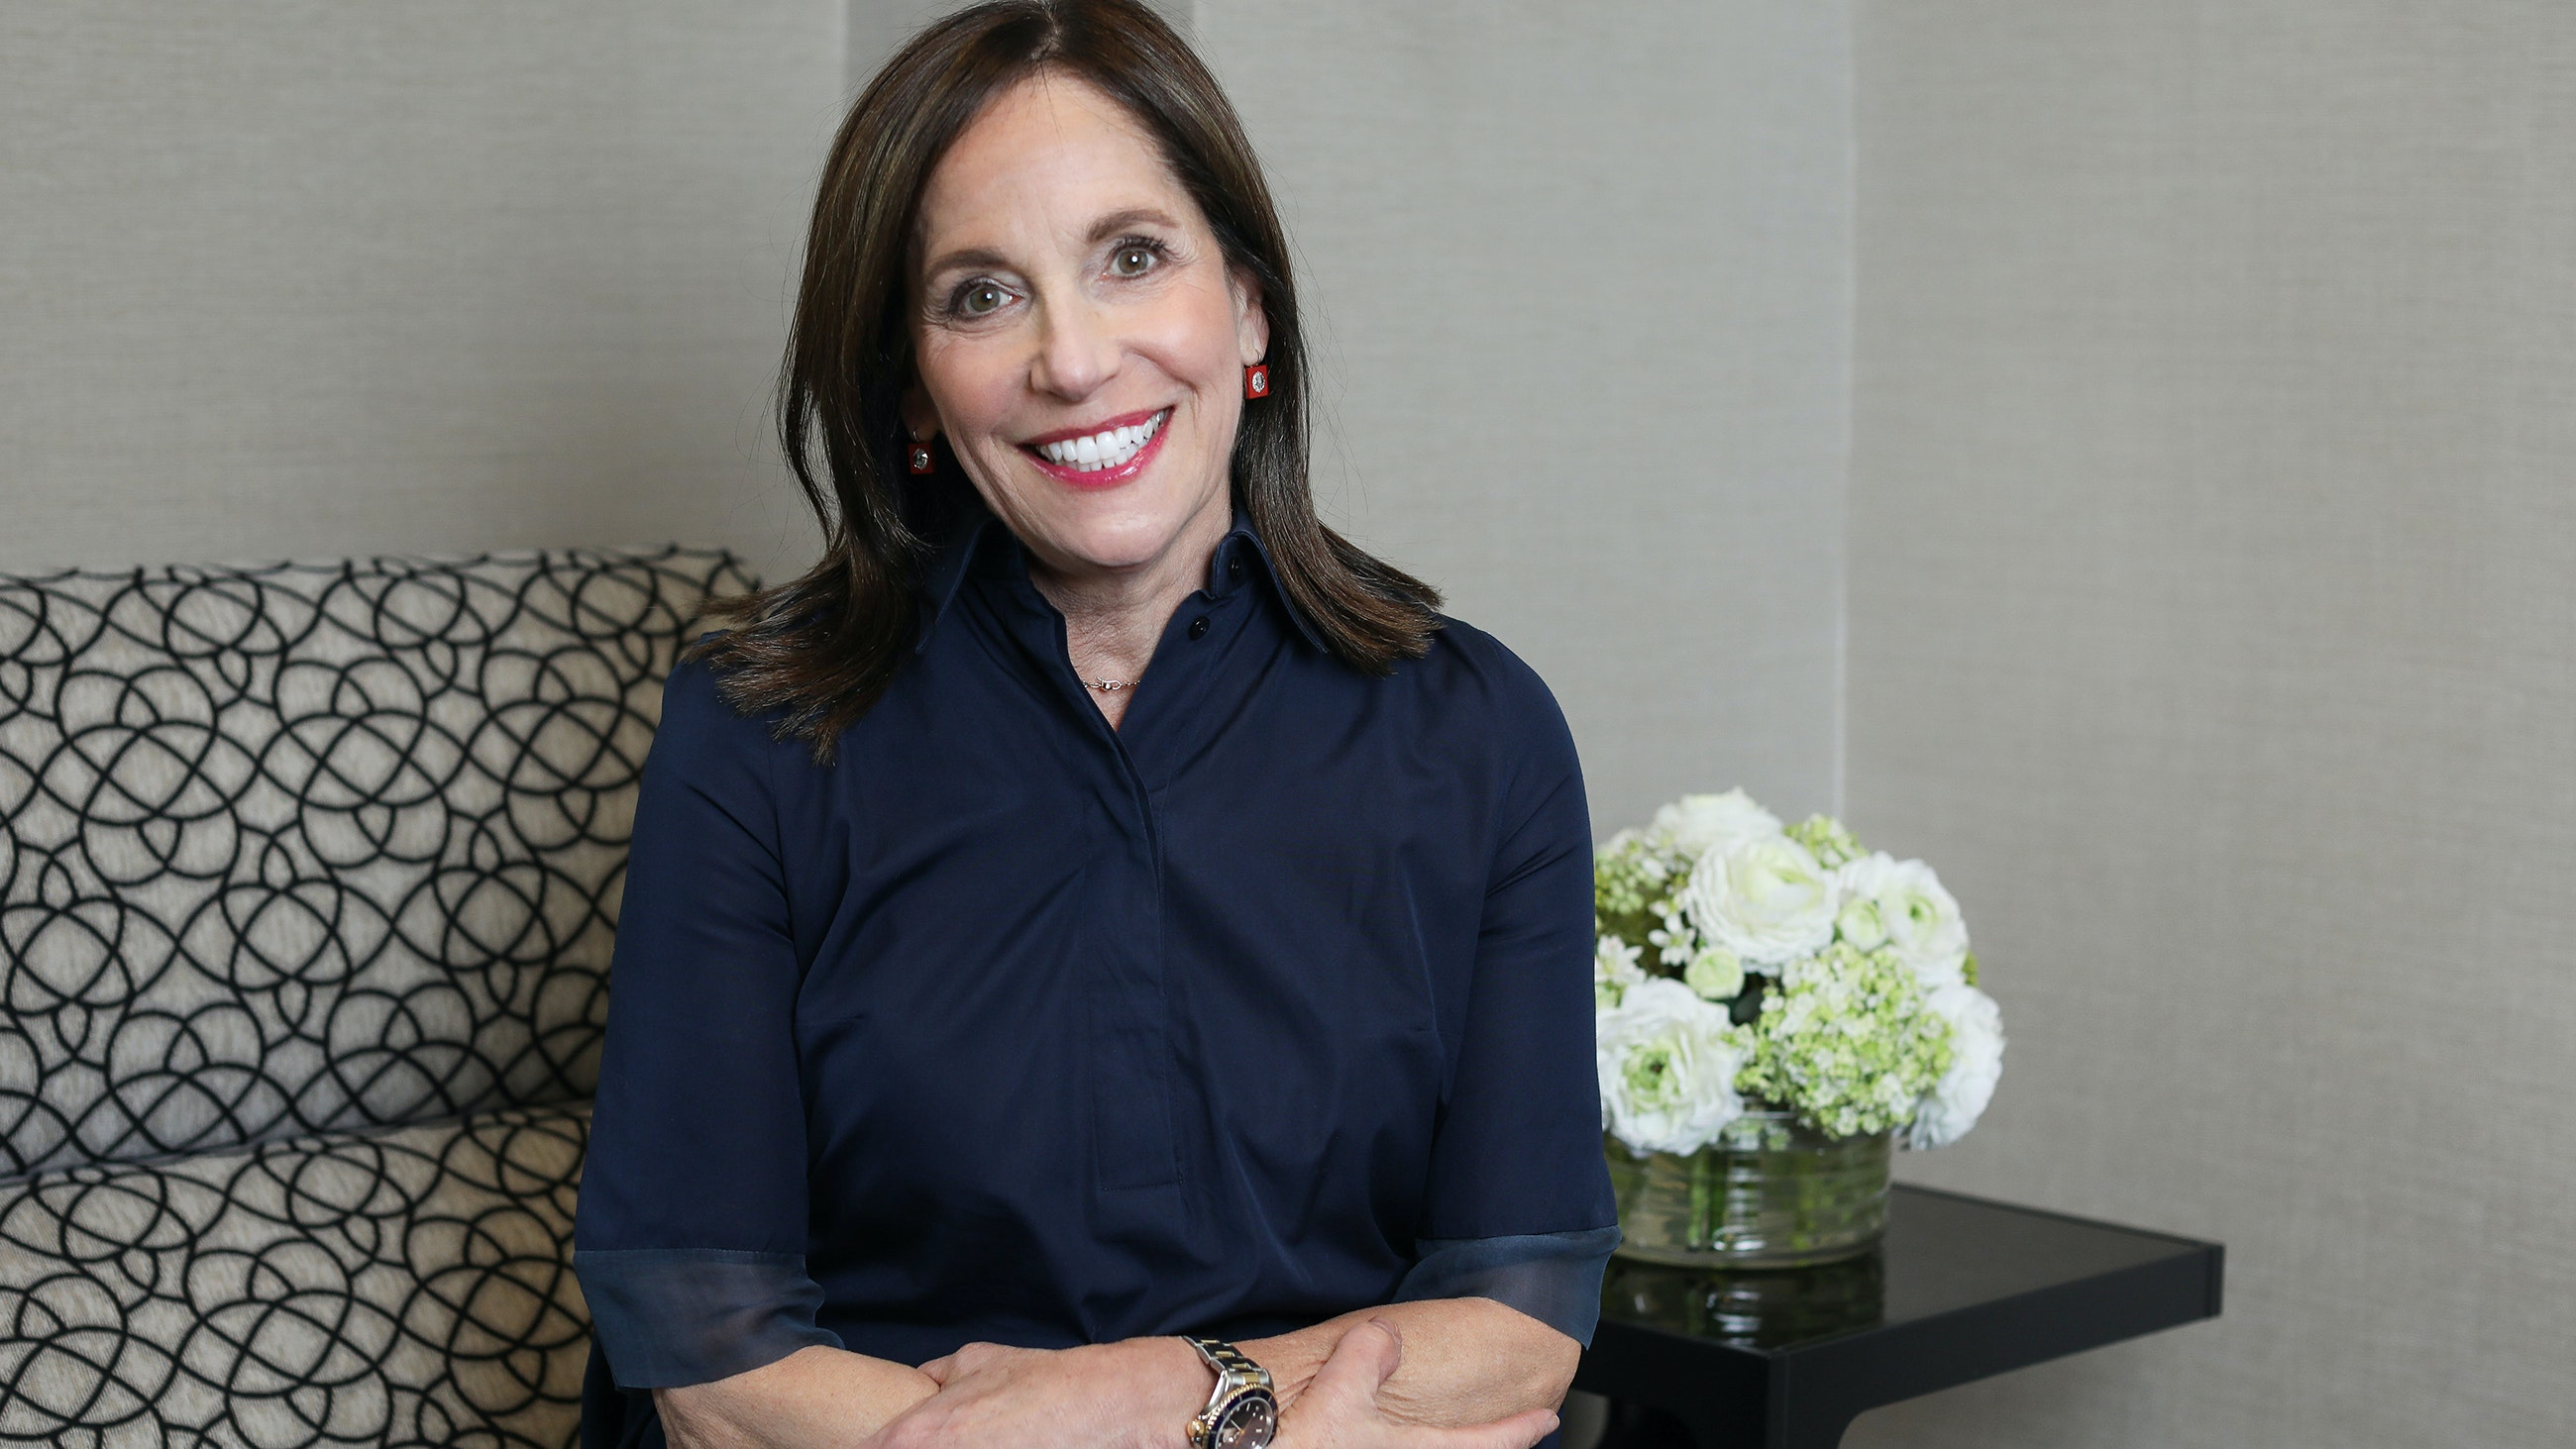 Upper East Side Derm Dr. Ellen Gendler on the 3 Essential Skincare Products Everyone Should Use